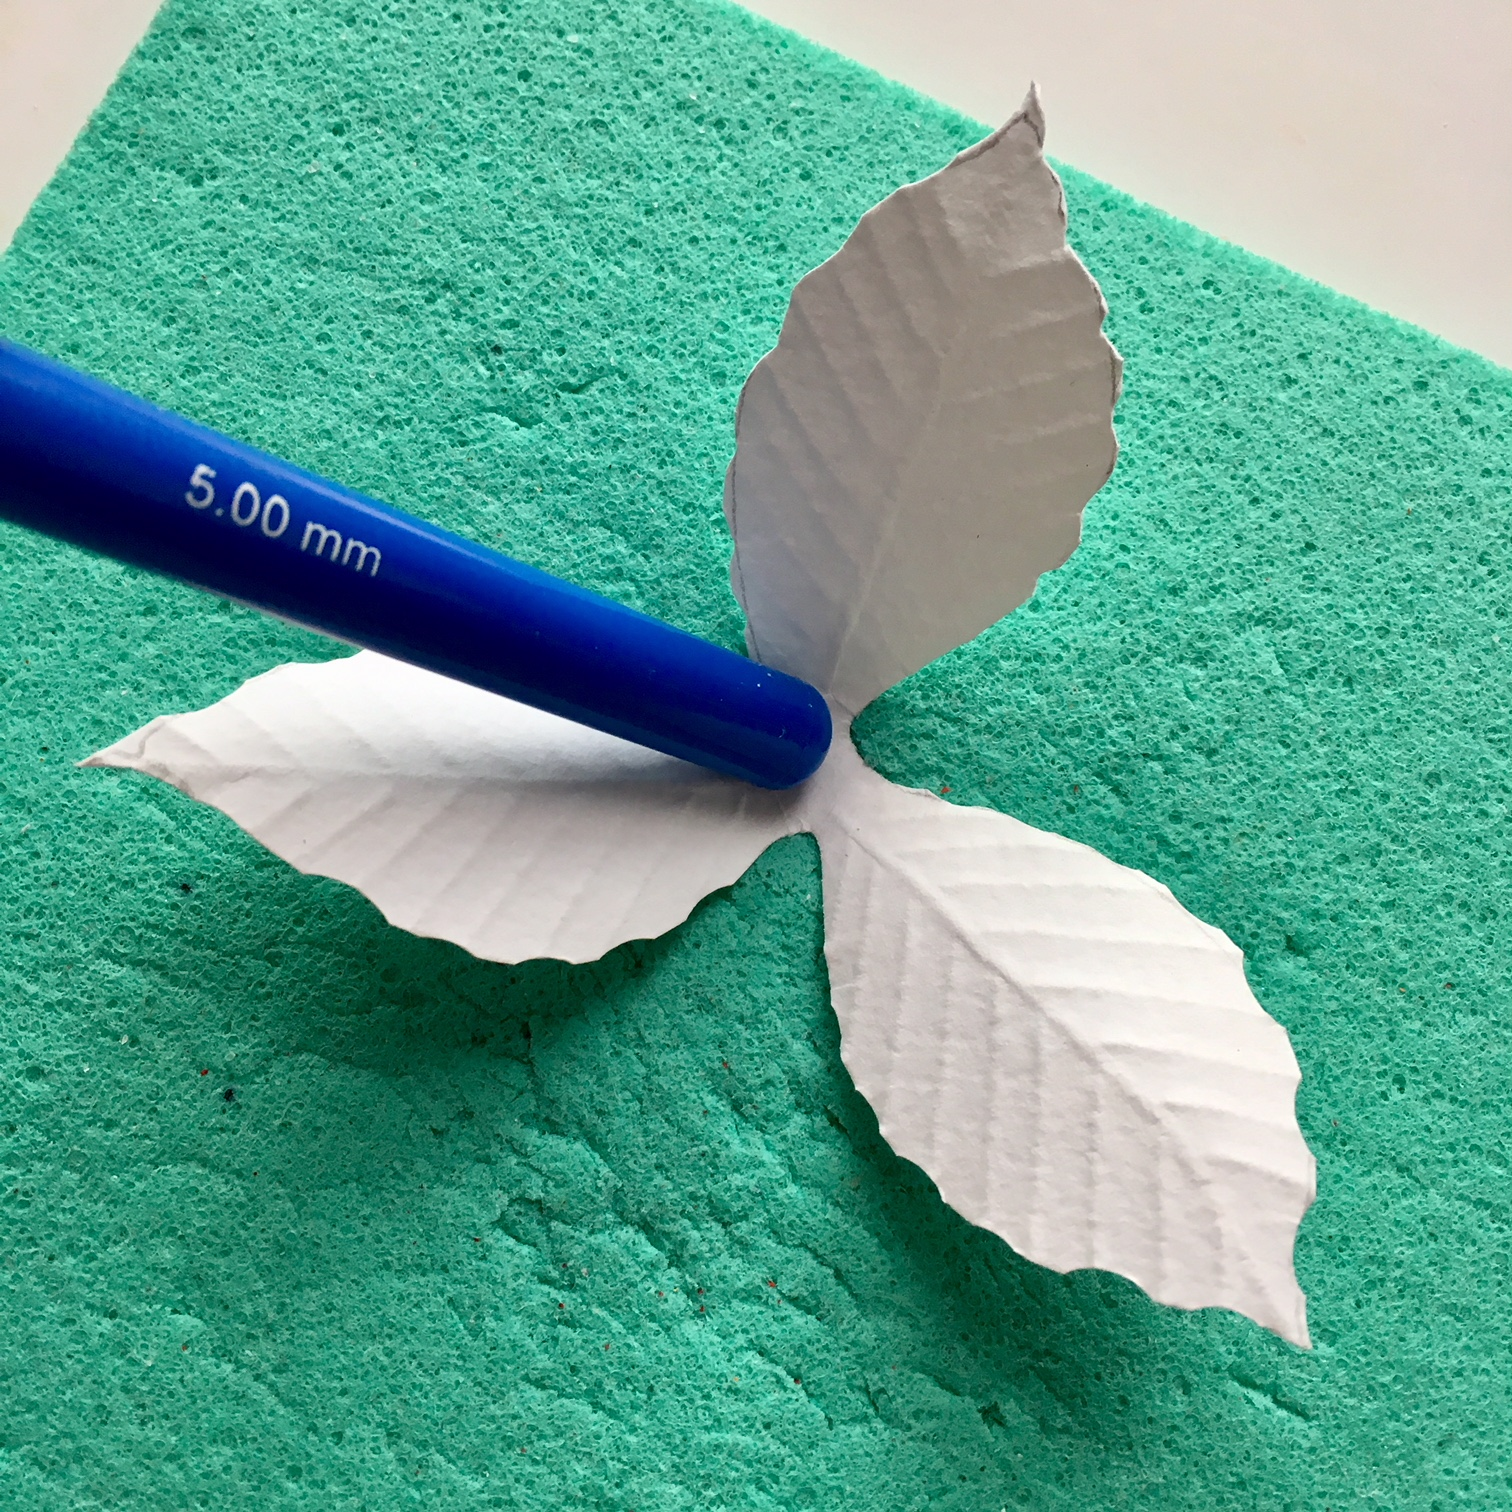 shaping the petals with croshet hook